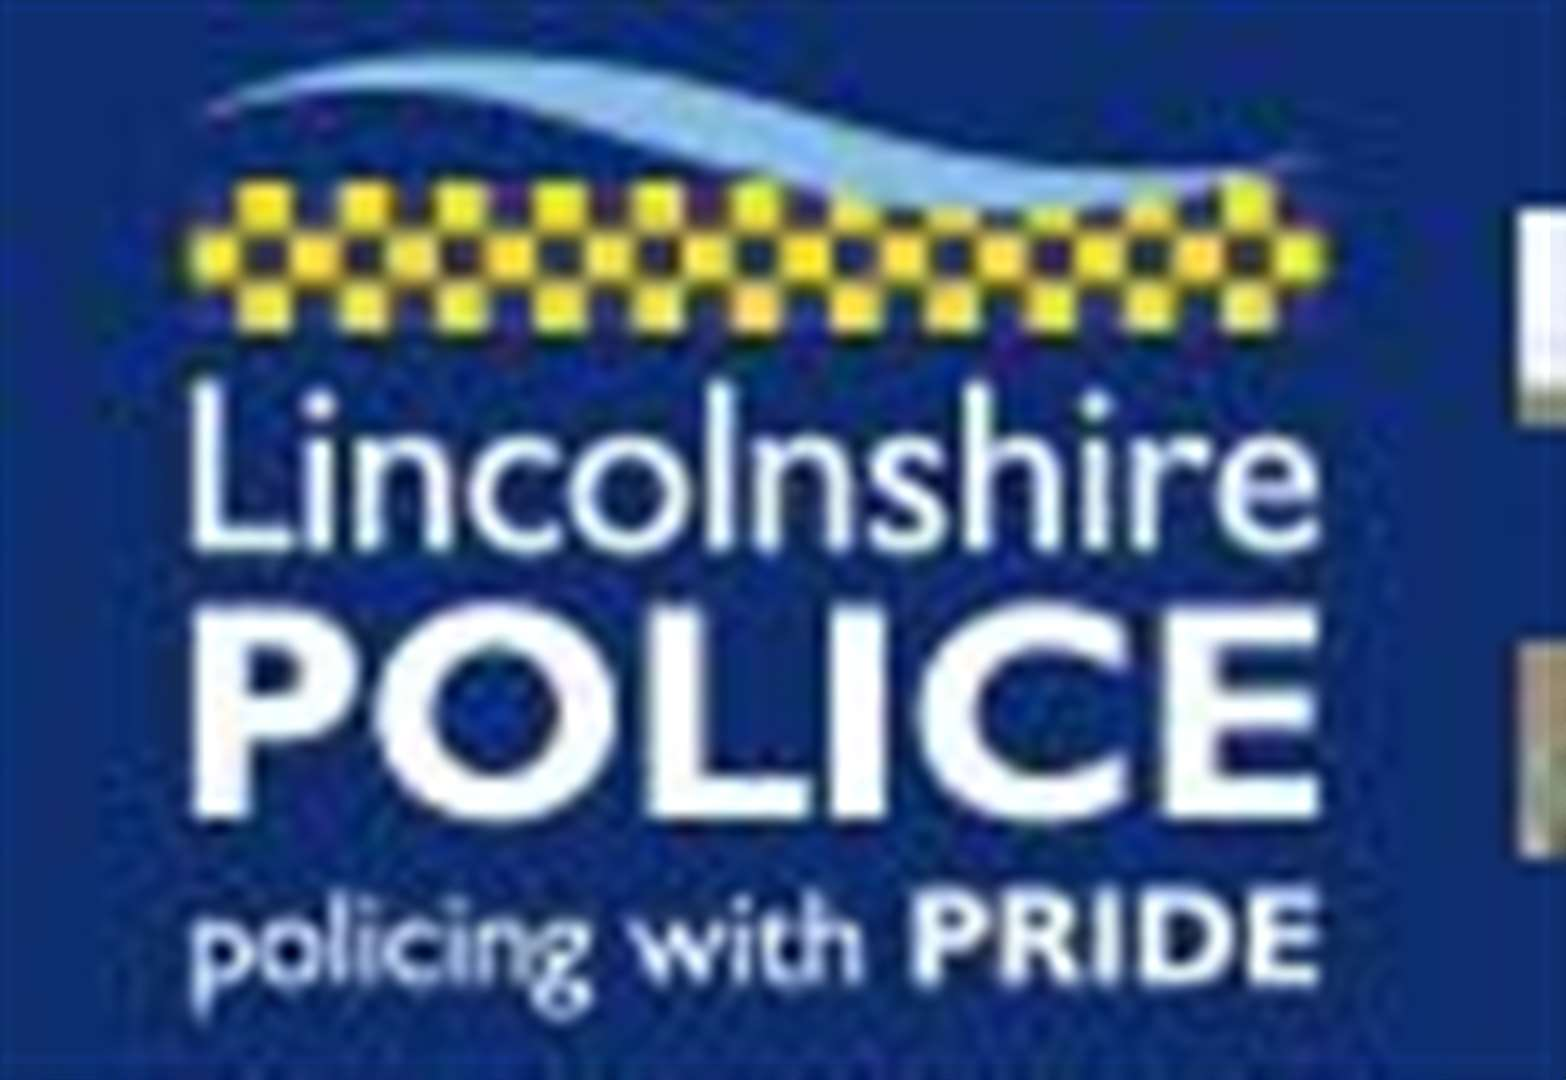 Lincolnshire police appeal for dashcam footage after A15 crash near Bourne